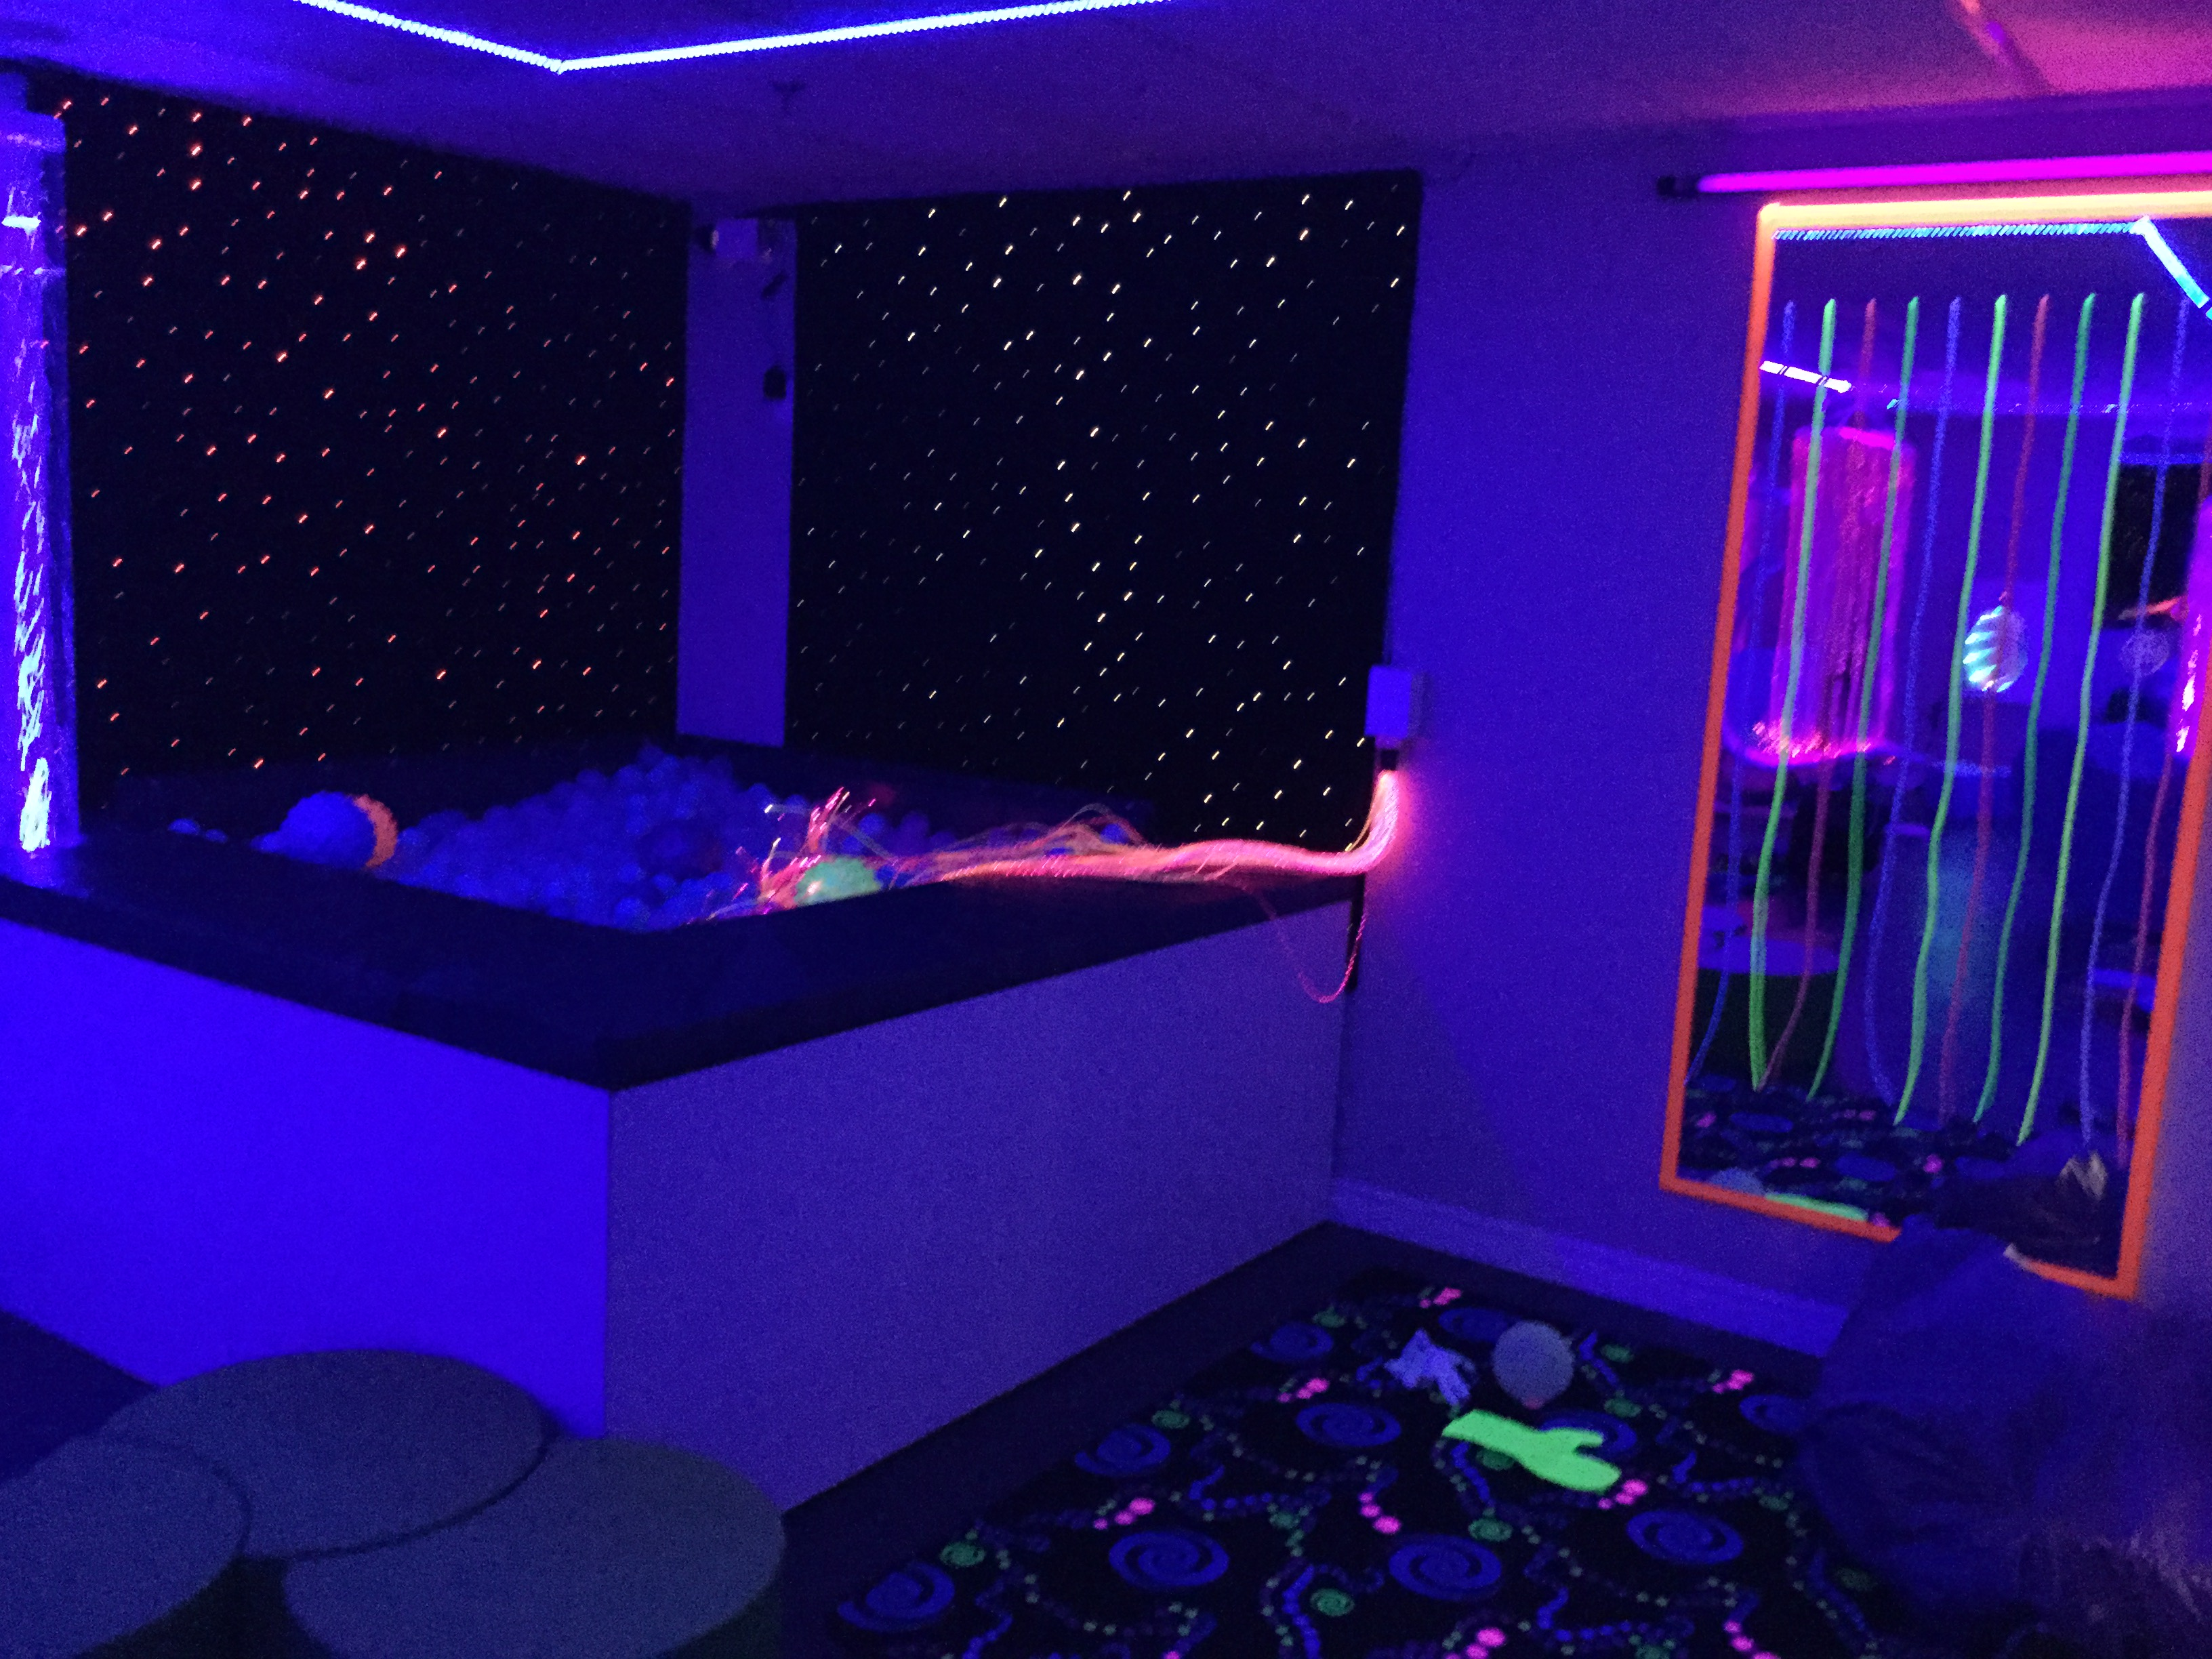 clear balls, fibre optic carpets, uv lights